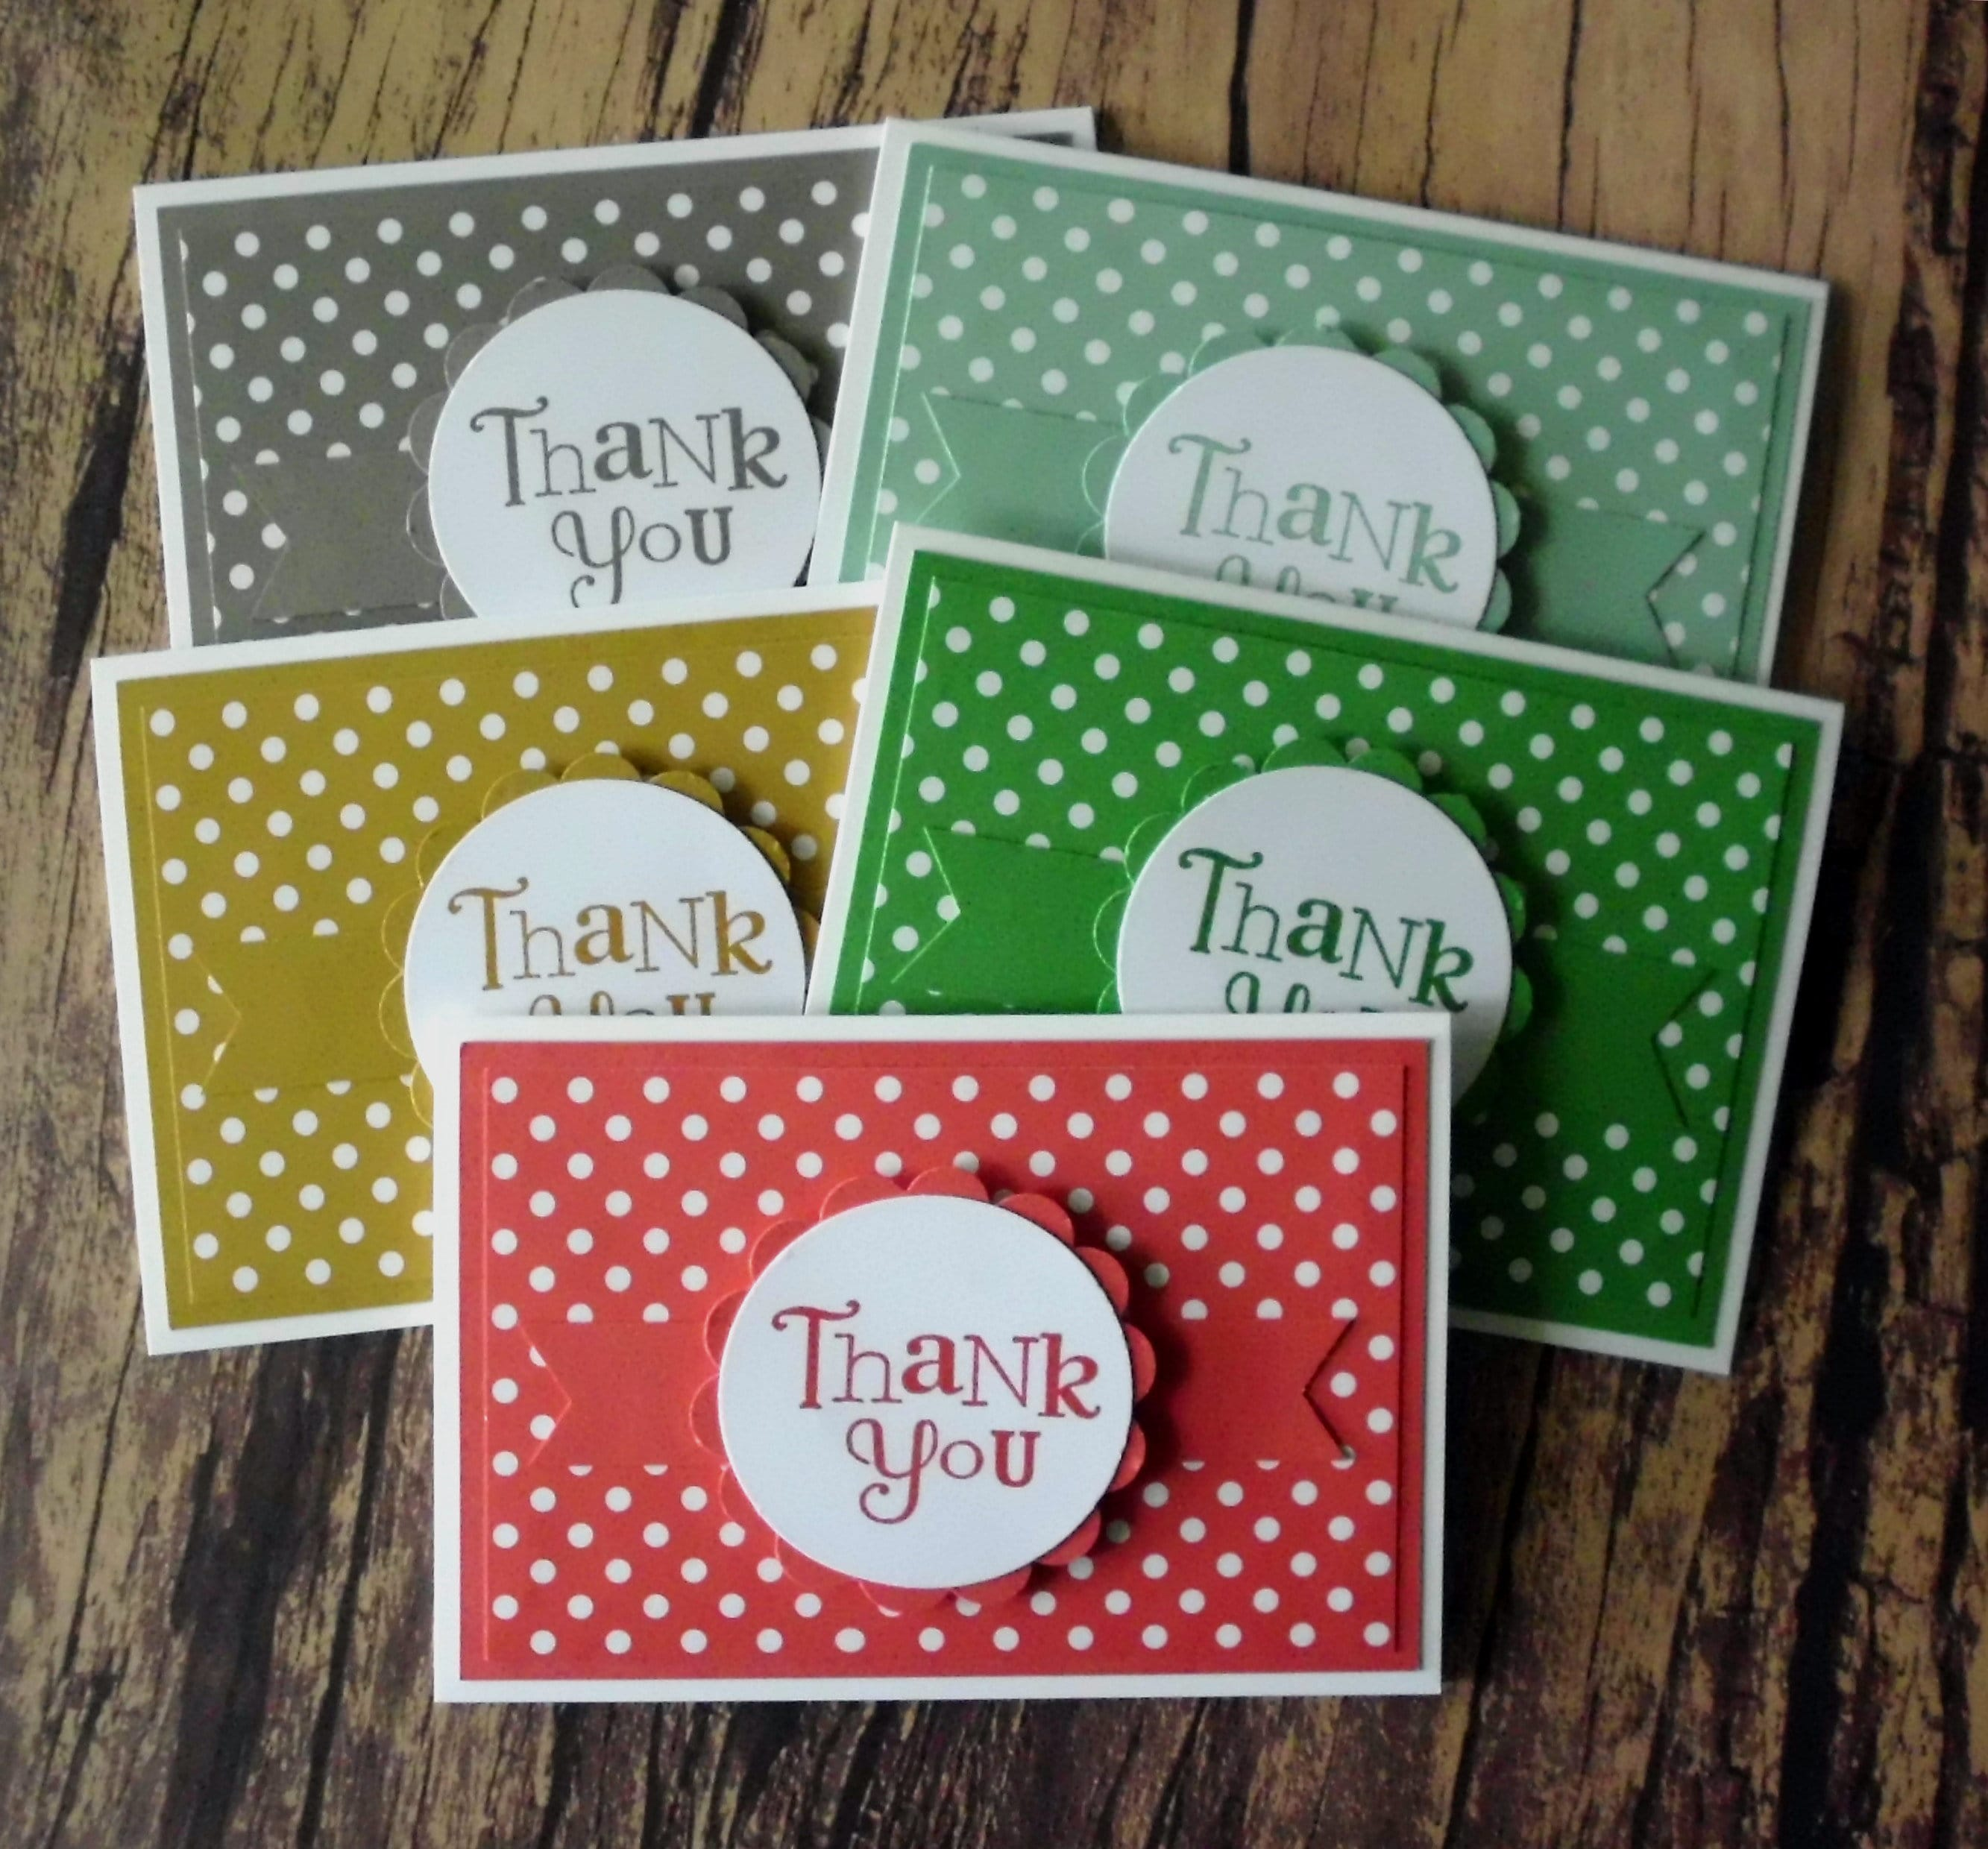 Stampin Up Karten Verkaufen Mini Thank You Cards Set Of 5 Stamped Greeting Cards Small Assorted Thank You Cards Stampin Up Thank You Note Card Set Handmade Cards